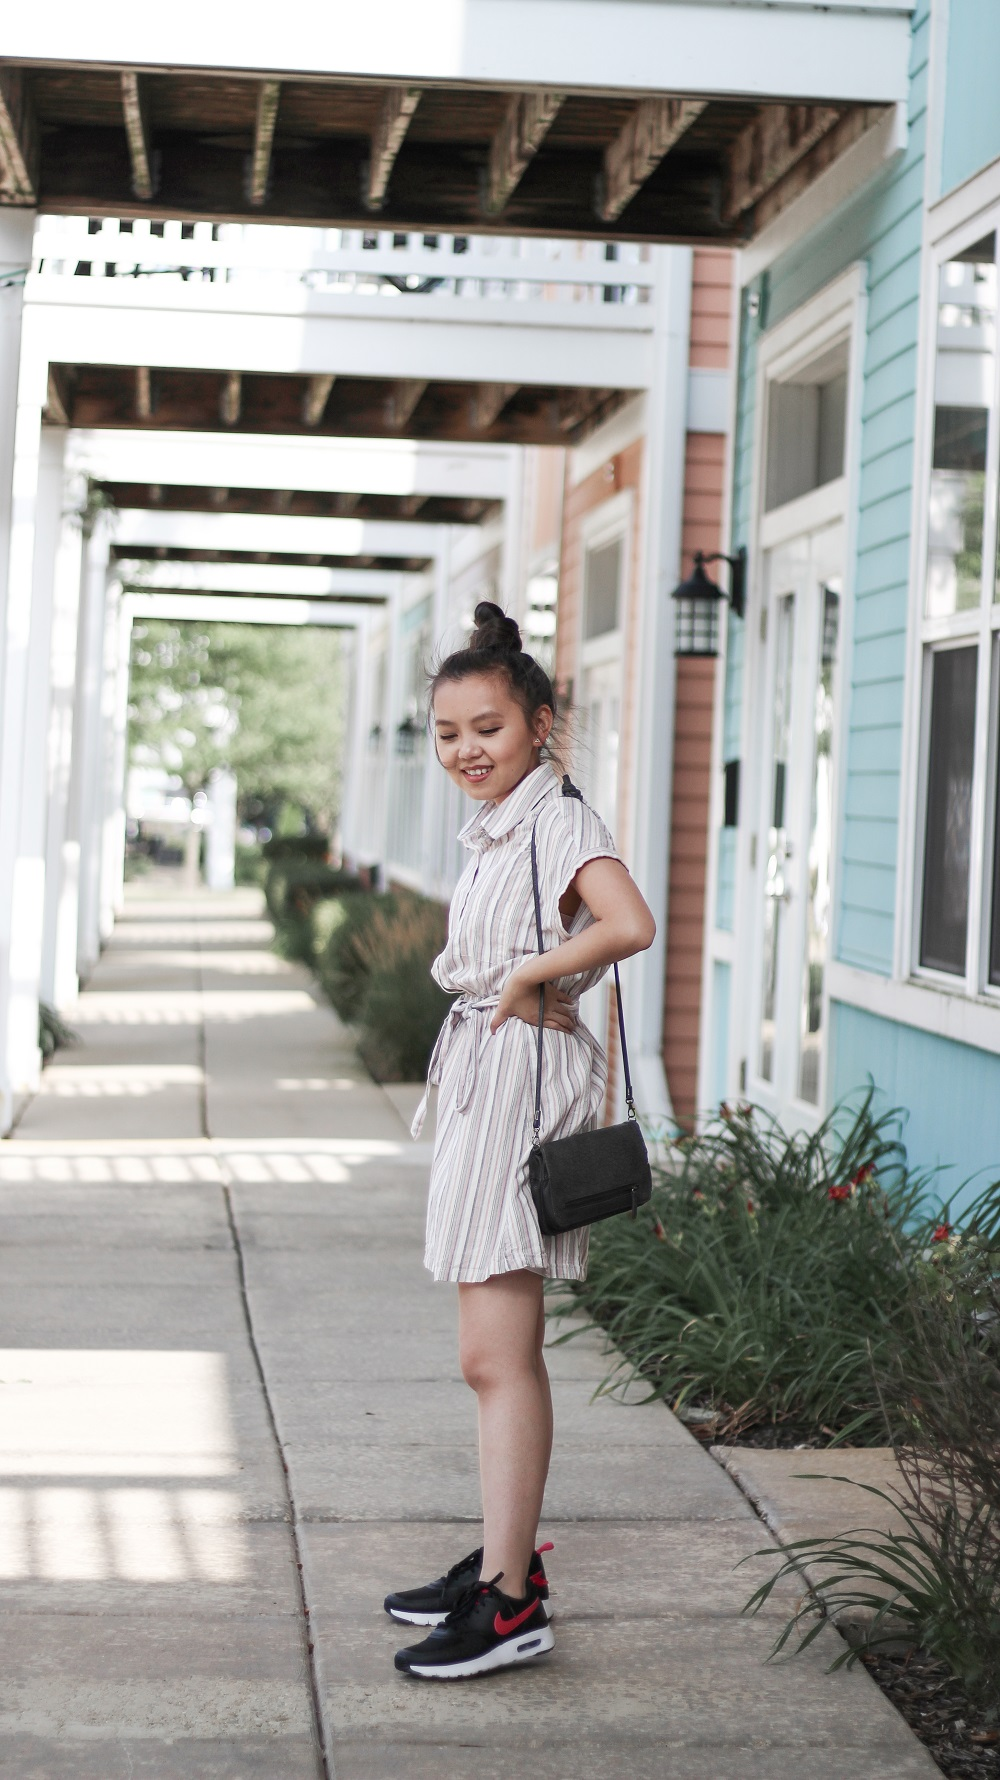 dress-and-sneakers-looks-by-mc.jpg